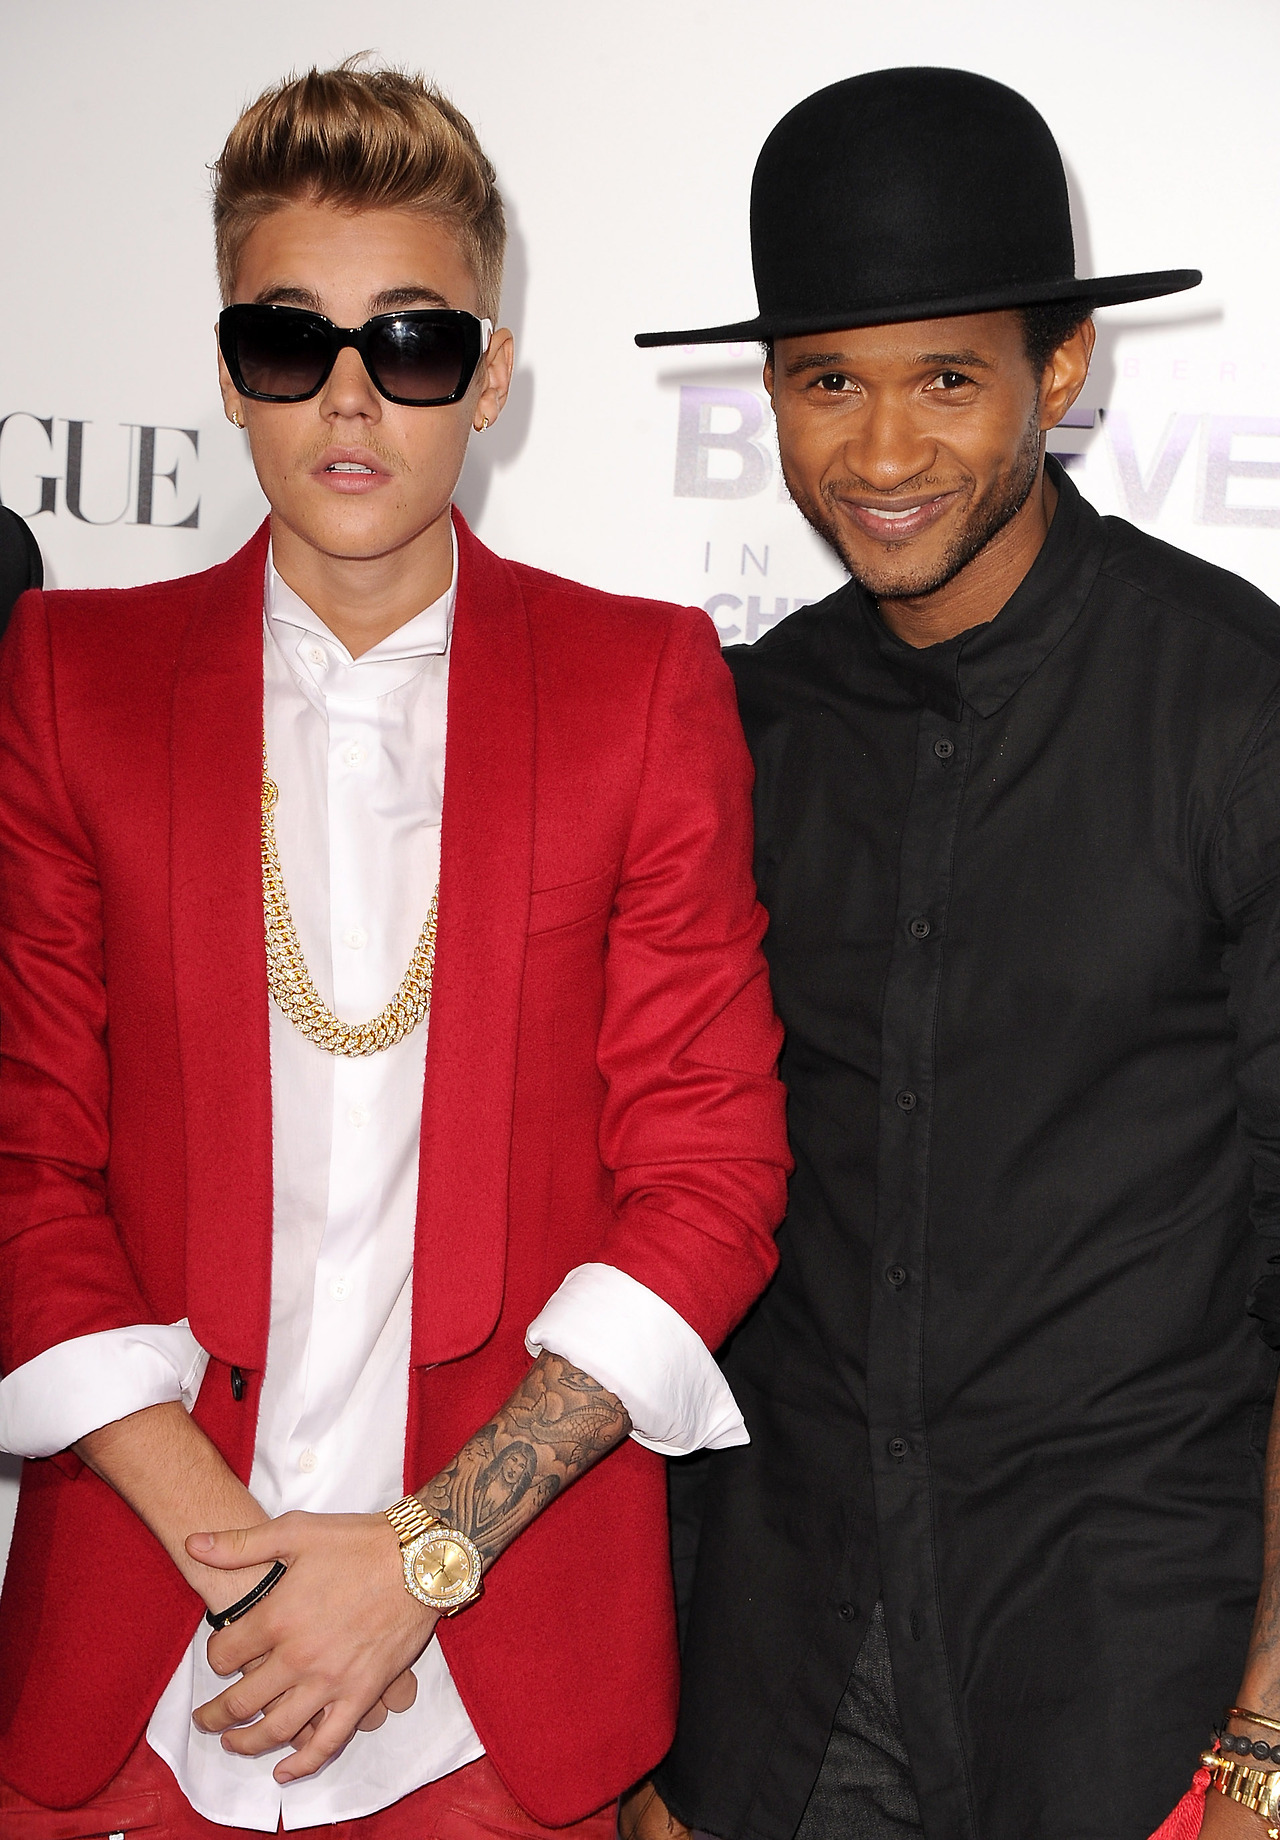 justin-bieber-believe-premiere-red-carpet-16